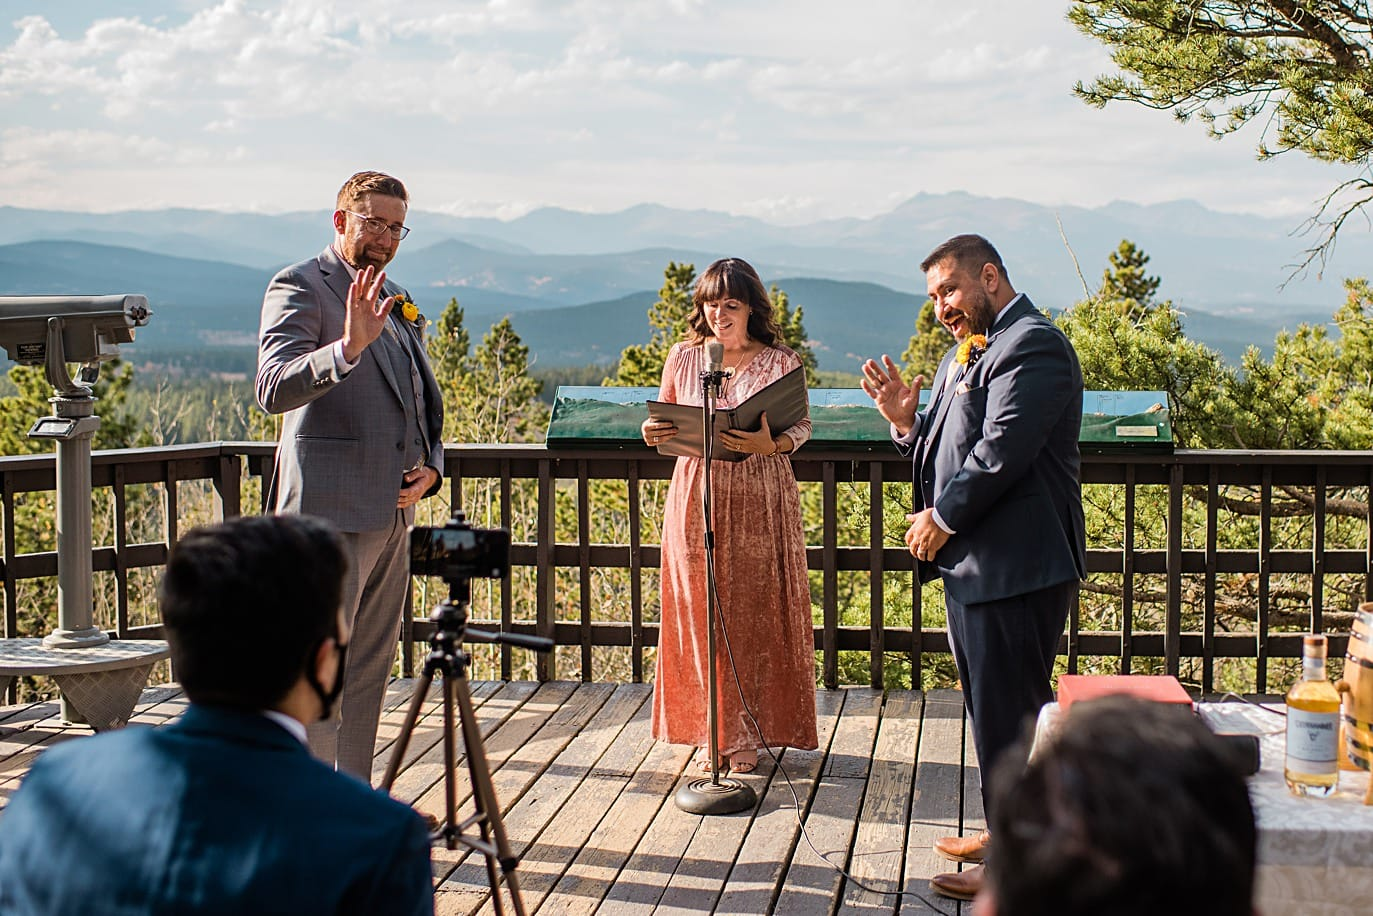 grooms wave to guest on zoom during intimate at Golden Gate Canyon microwedding by Golden wedding photographer Jennie Crate